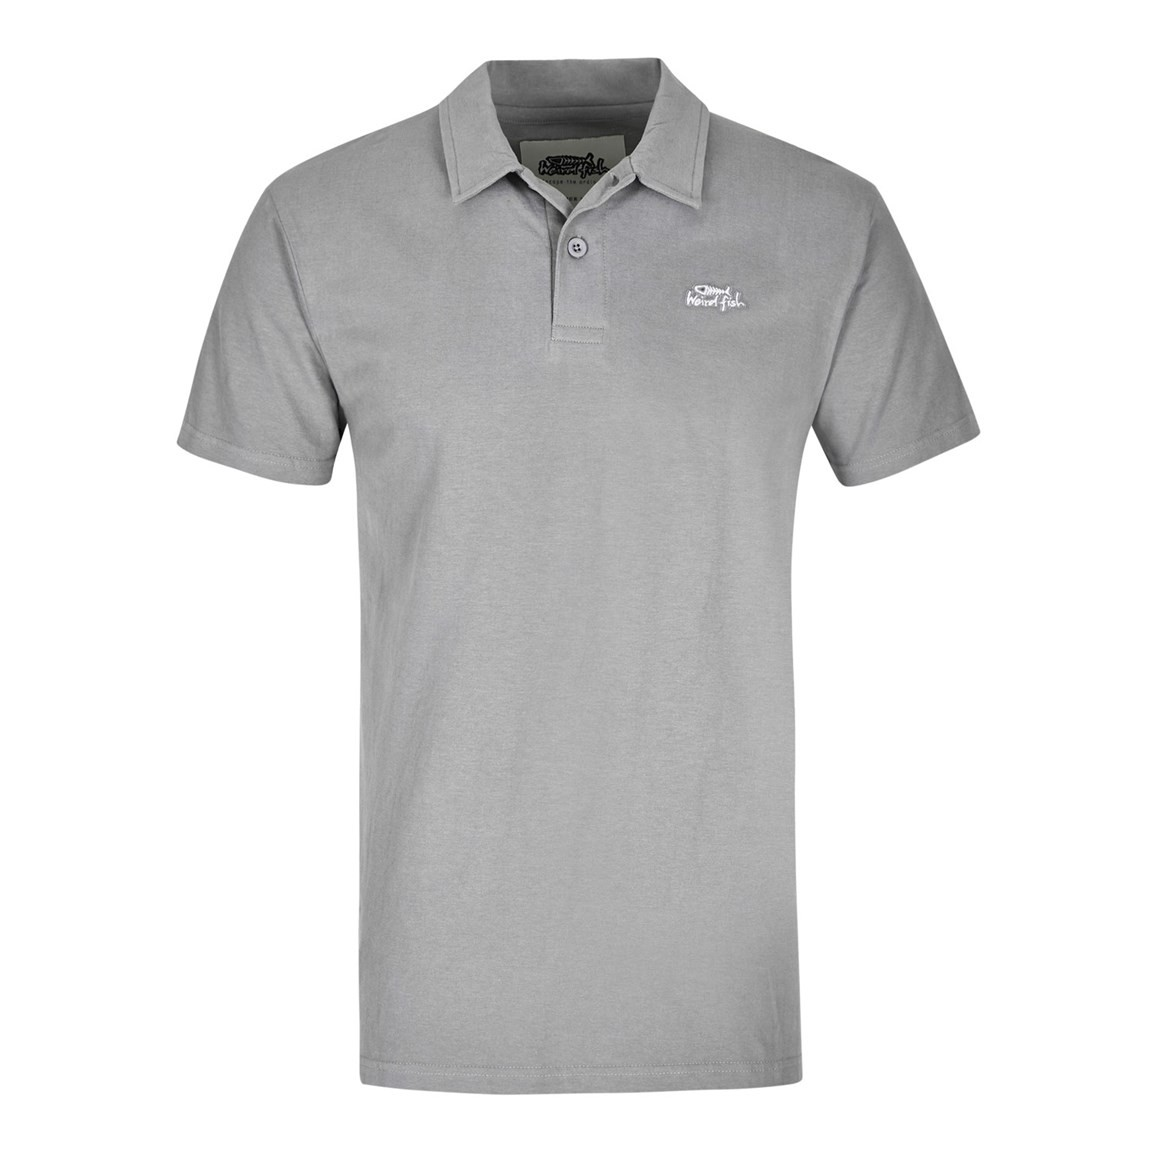 Andrew Plain Jersey Polo Shirt Frost Grey